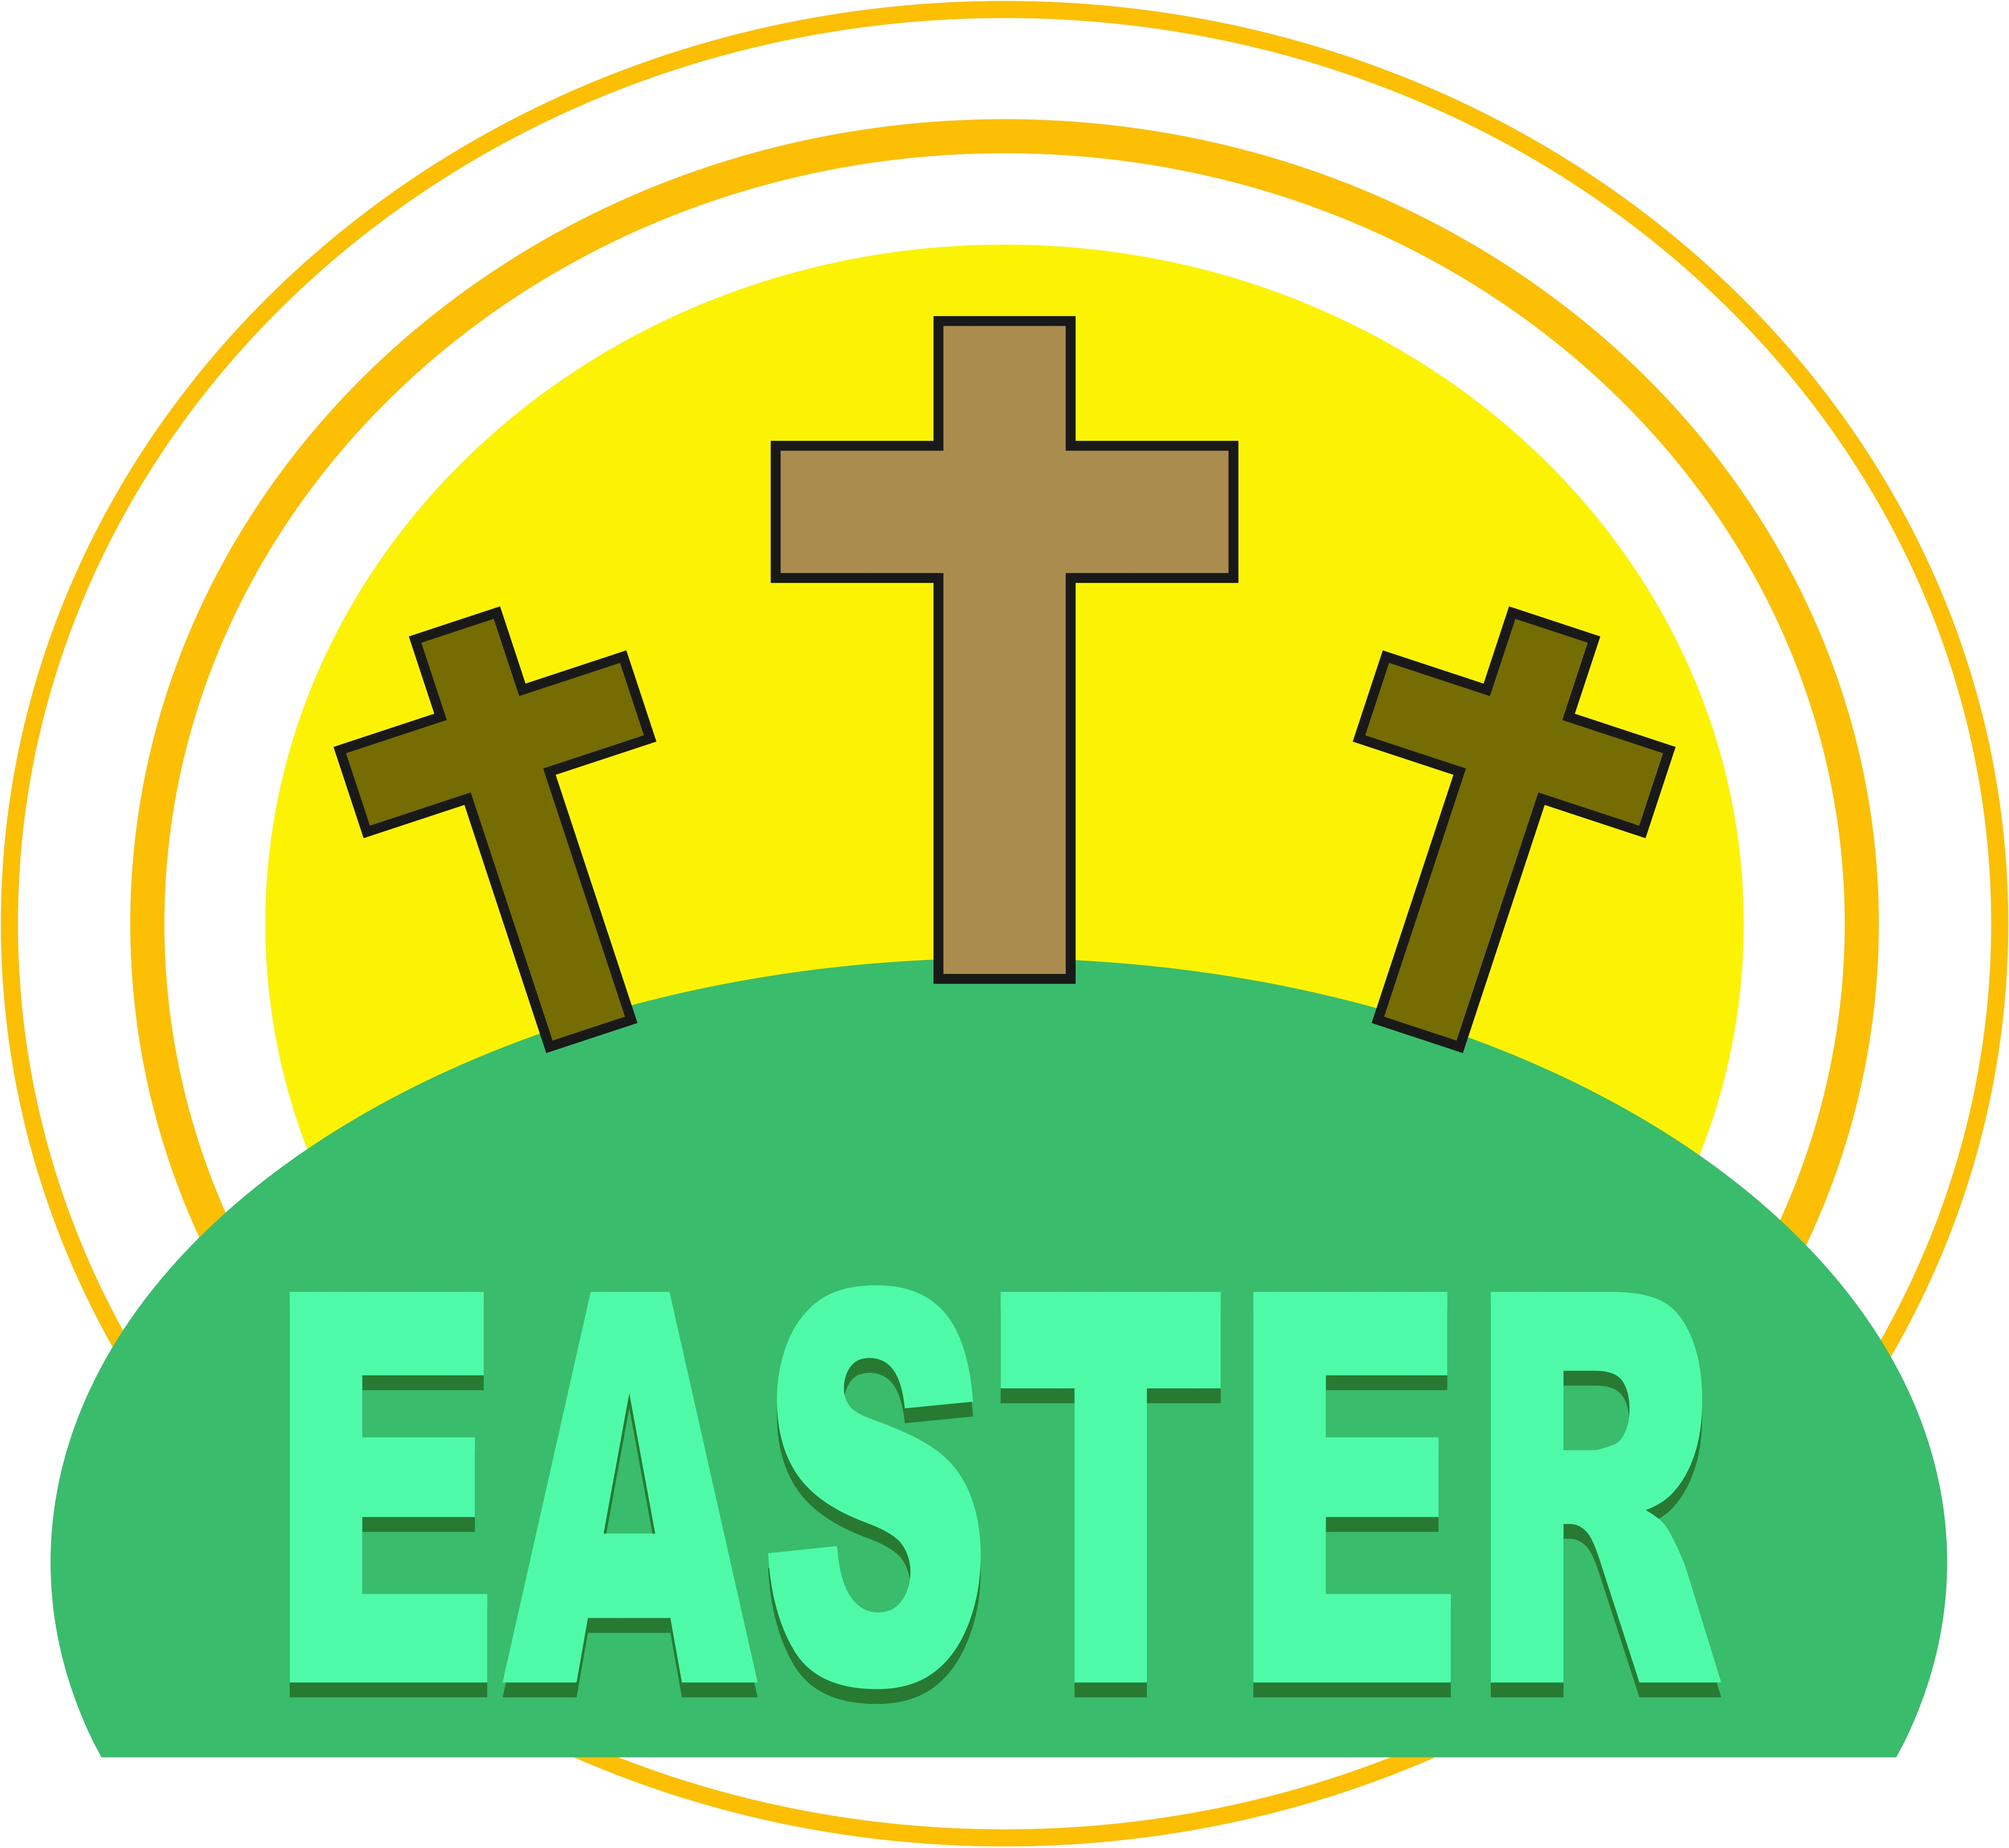 Easter calvary free images at vector clip - Christian easter images free ...